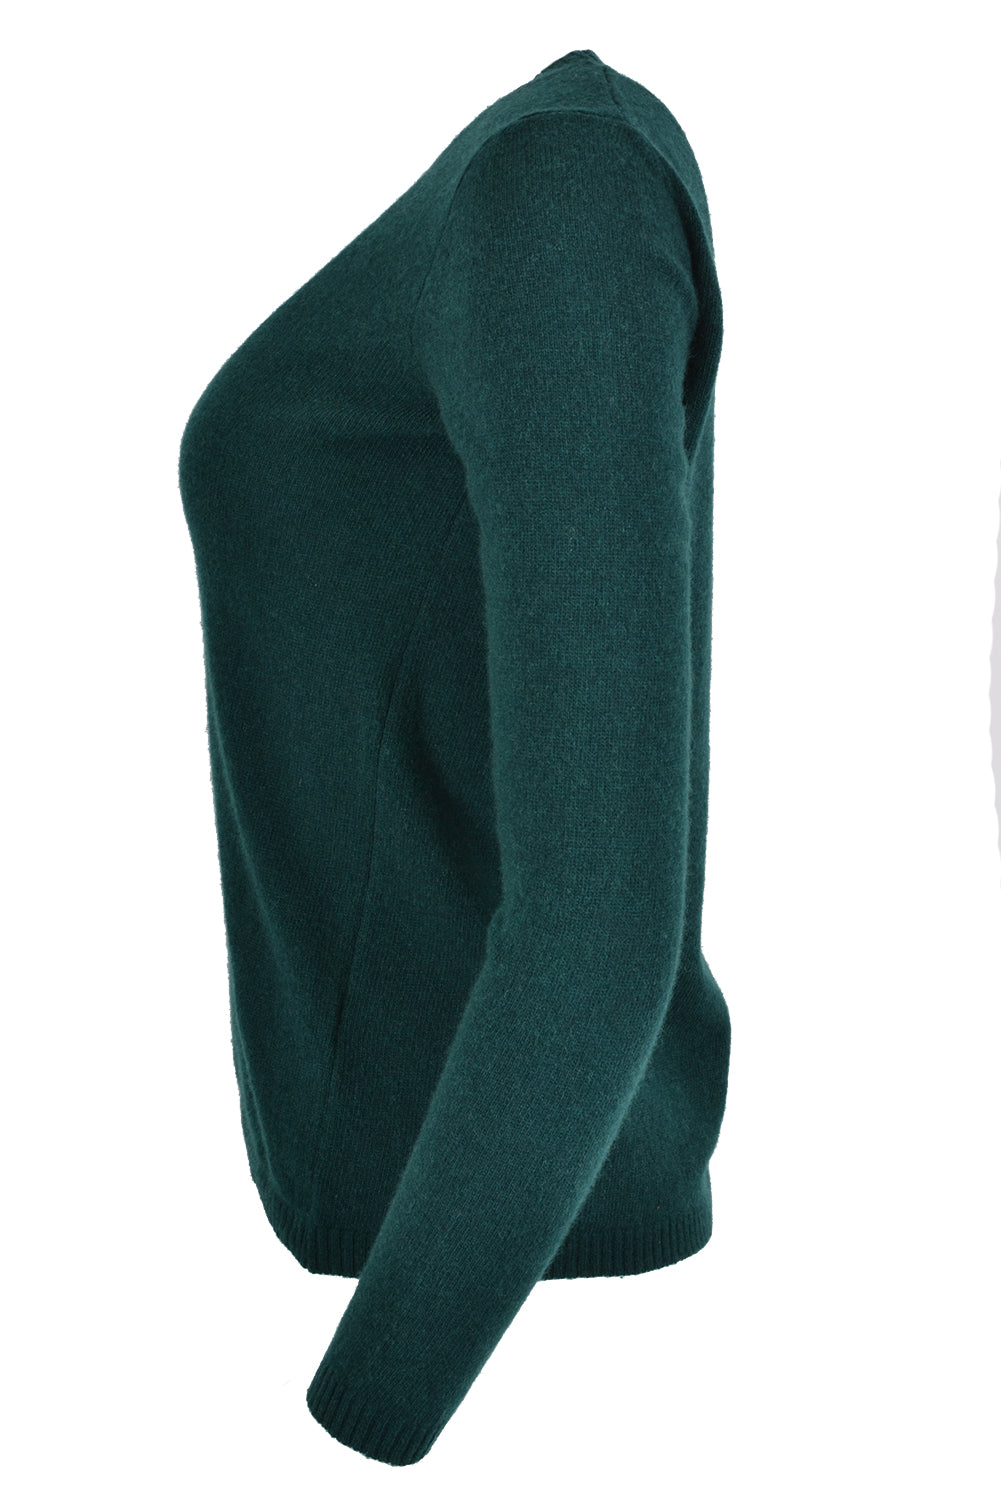 Ottod'Ame Cashmere Round Neck skinny Jumper Bottle Green